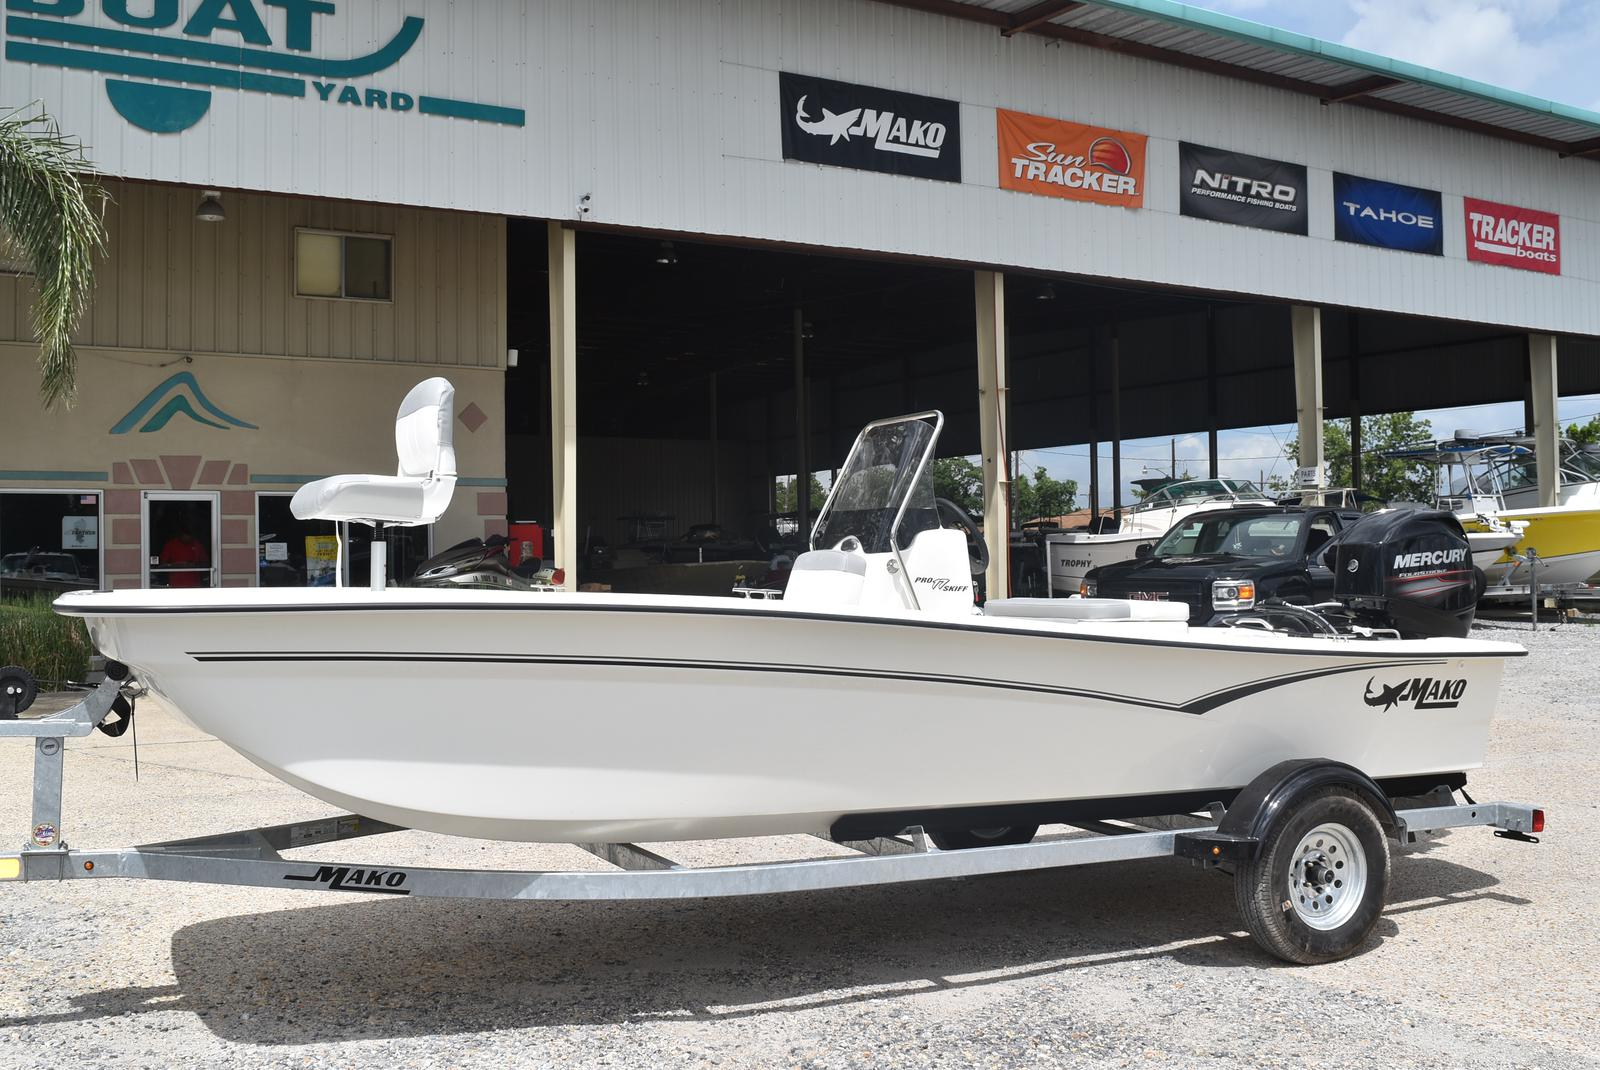 2020 Mako boat for sale, model of the boat is Pro Skiff 17, 75 ELPT & Image # 95 of 702